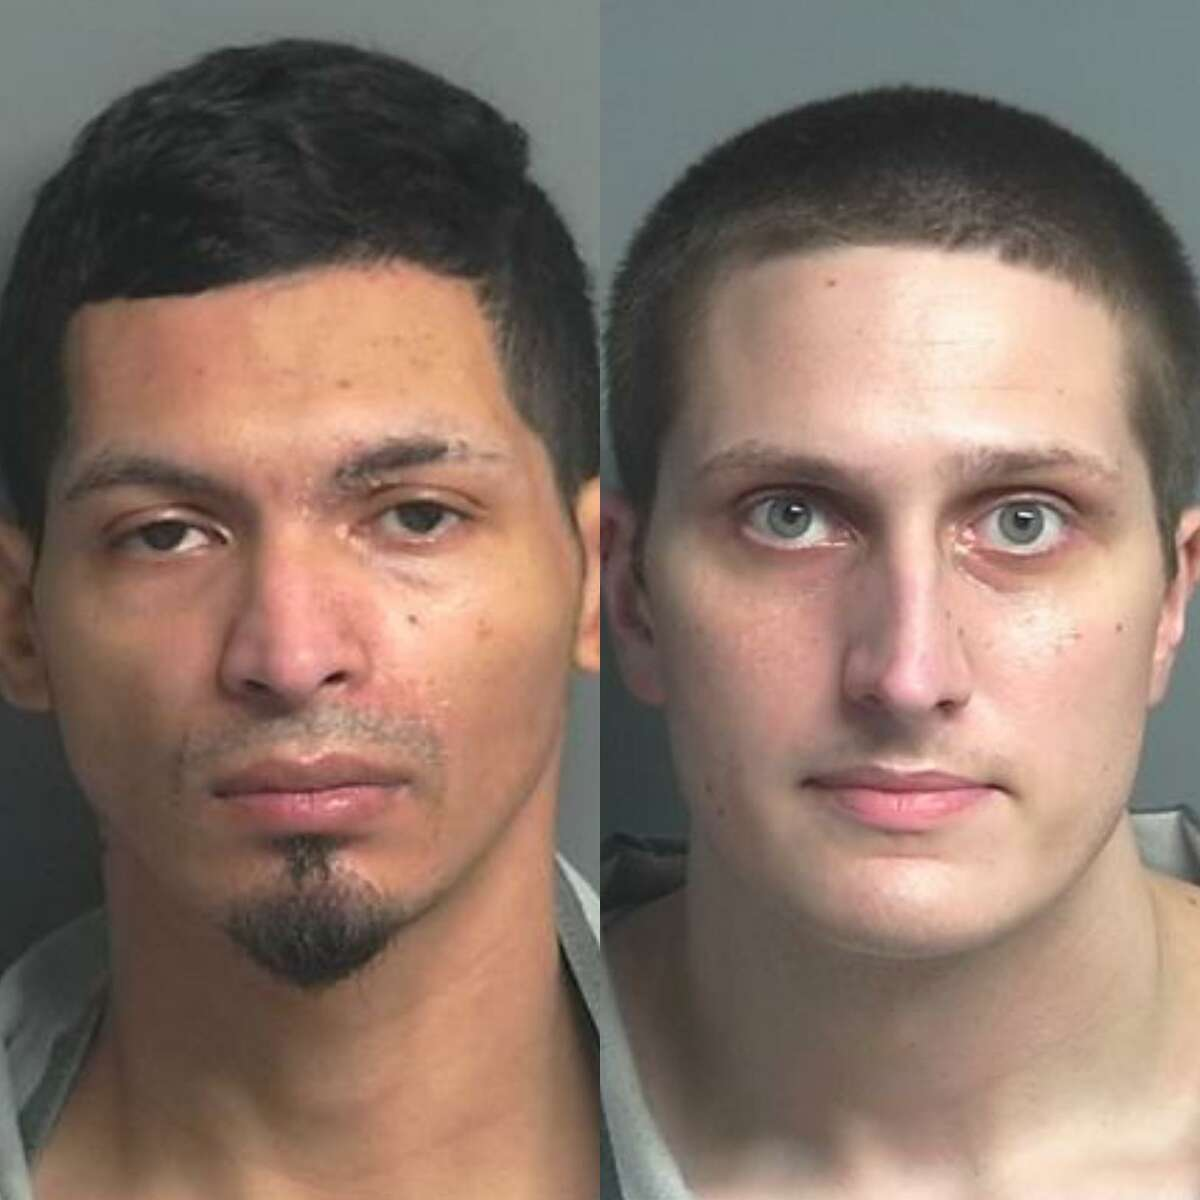 Richard Anthony Escobar, 32, of Pasadena, left, and Thomas Michael Mock III, 25, of Houston, right, are each charged with two counts of burglary of a vehicle, a Class A misdemeanor.